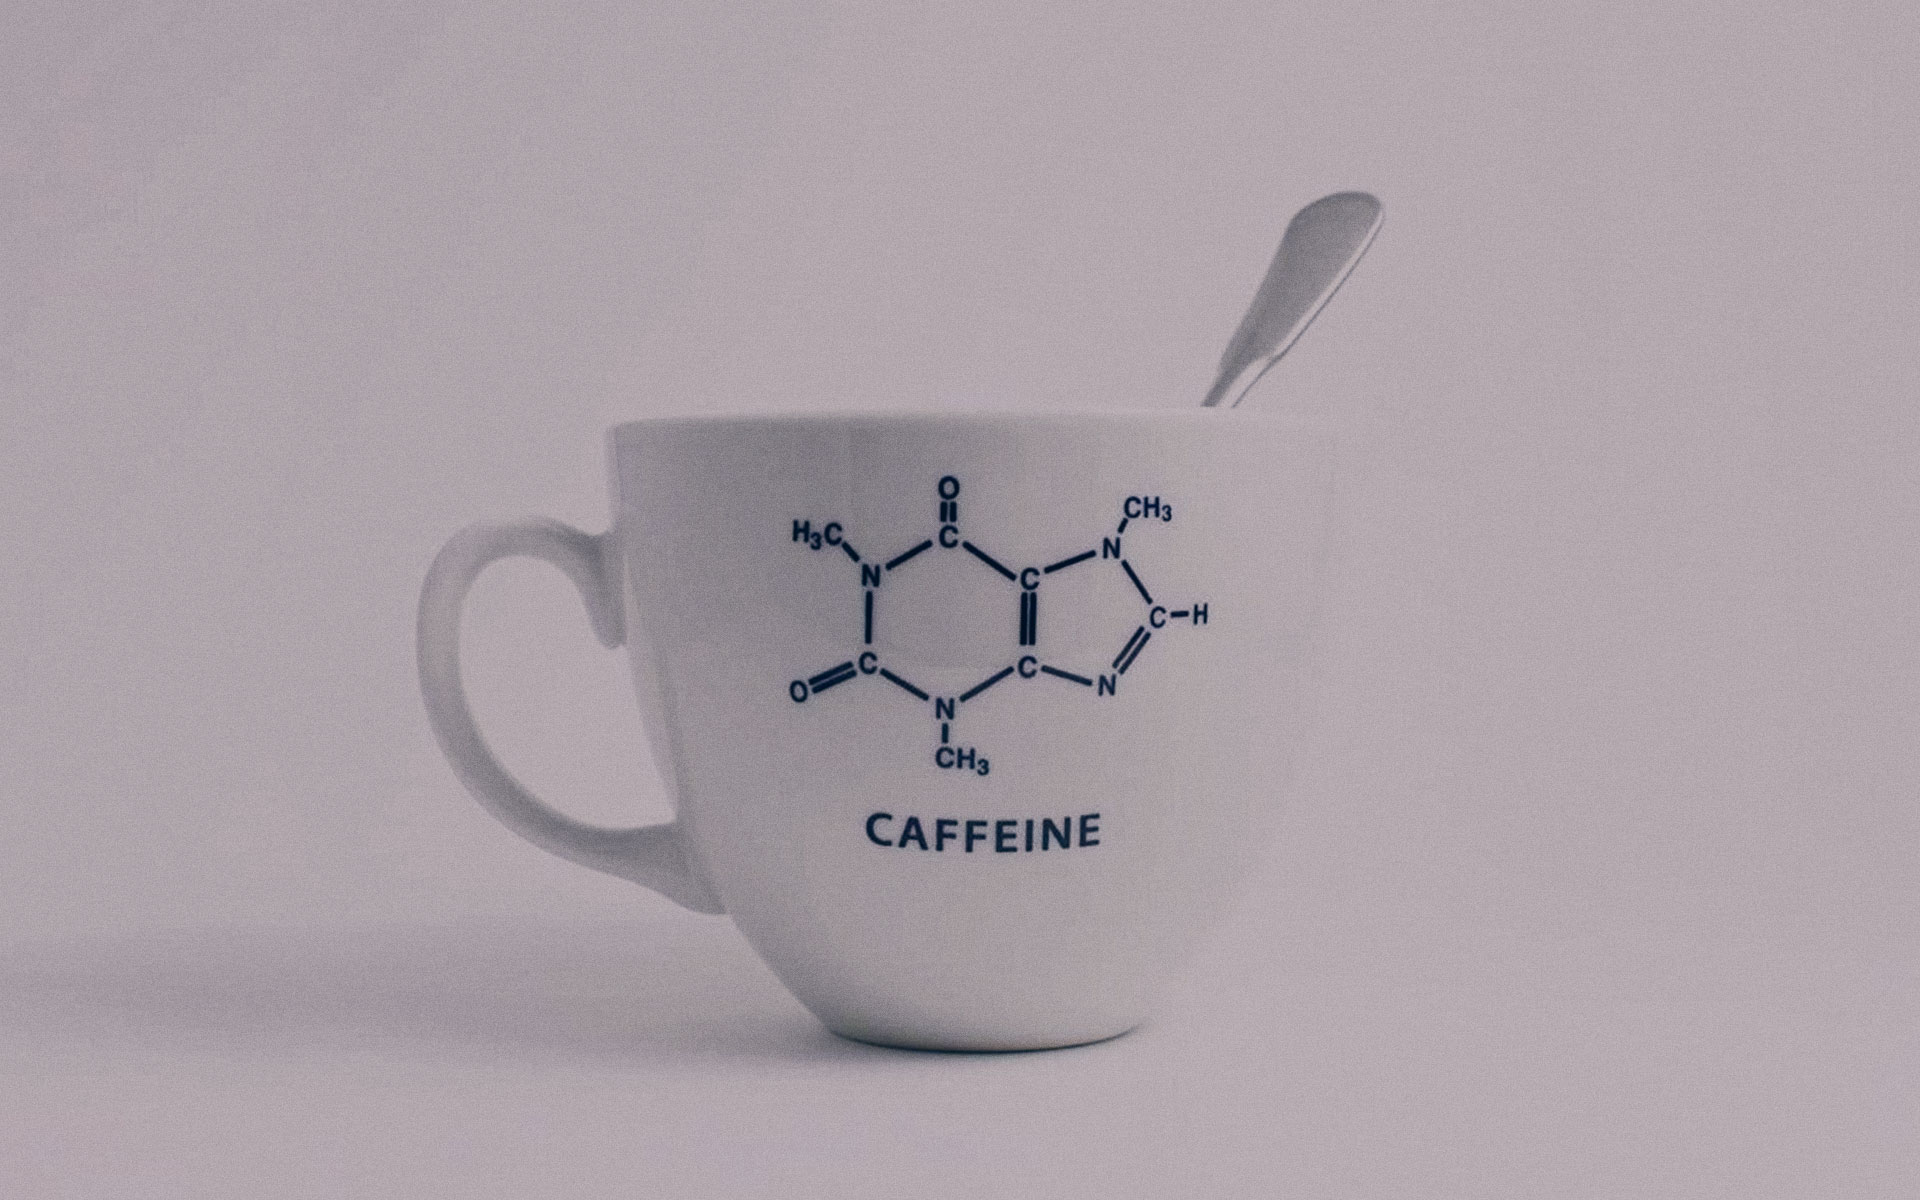 Chemistry in a cup